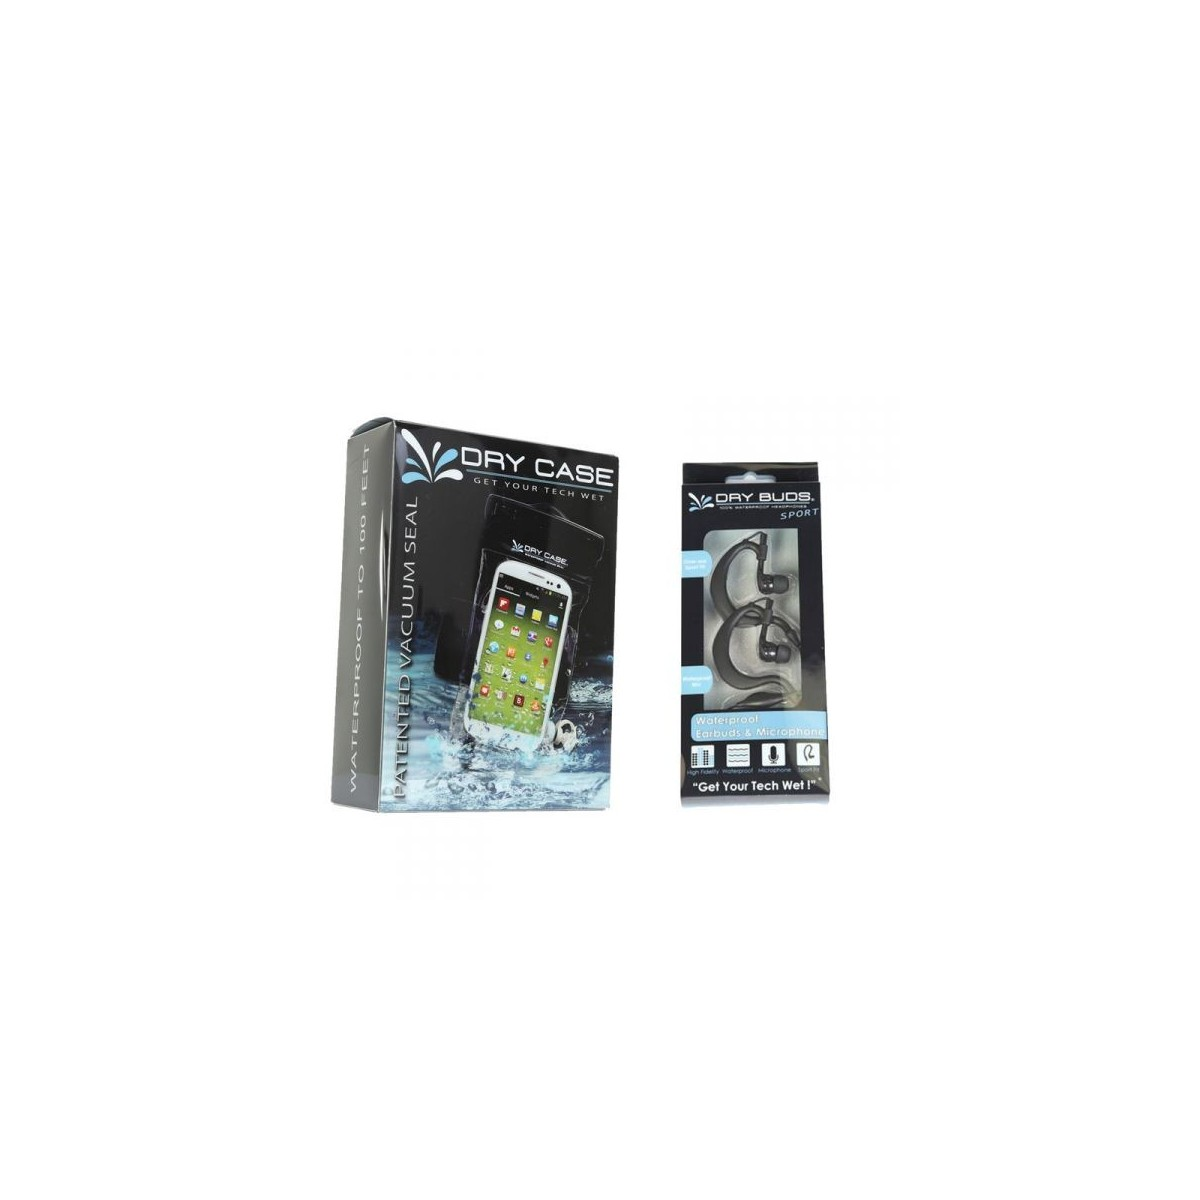 DryCASE (DC-13) Waterproof Electronics Case & DryBUDS (DB-26) Fusion Waterproof Earbuds Sport Combo